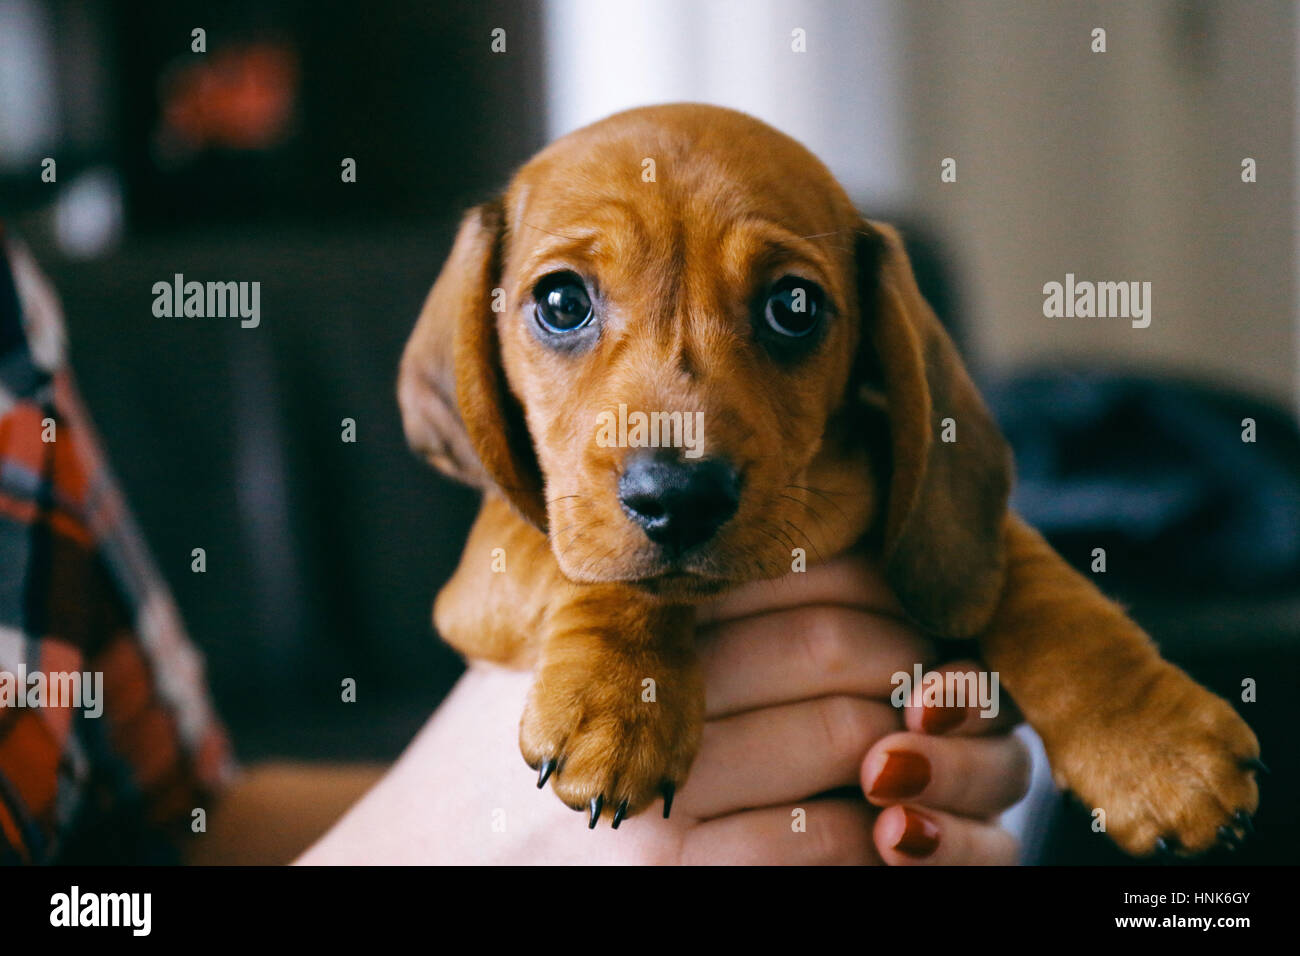 8 Weeks Old Smooth Hair Brown Dachshund Puppy Held In Hands Of Its Stock Photo Alamy